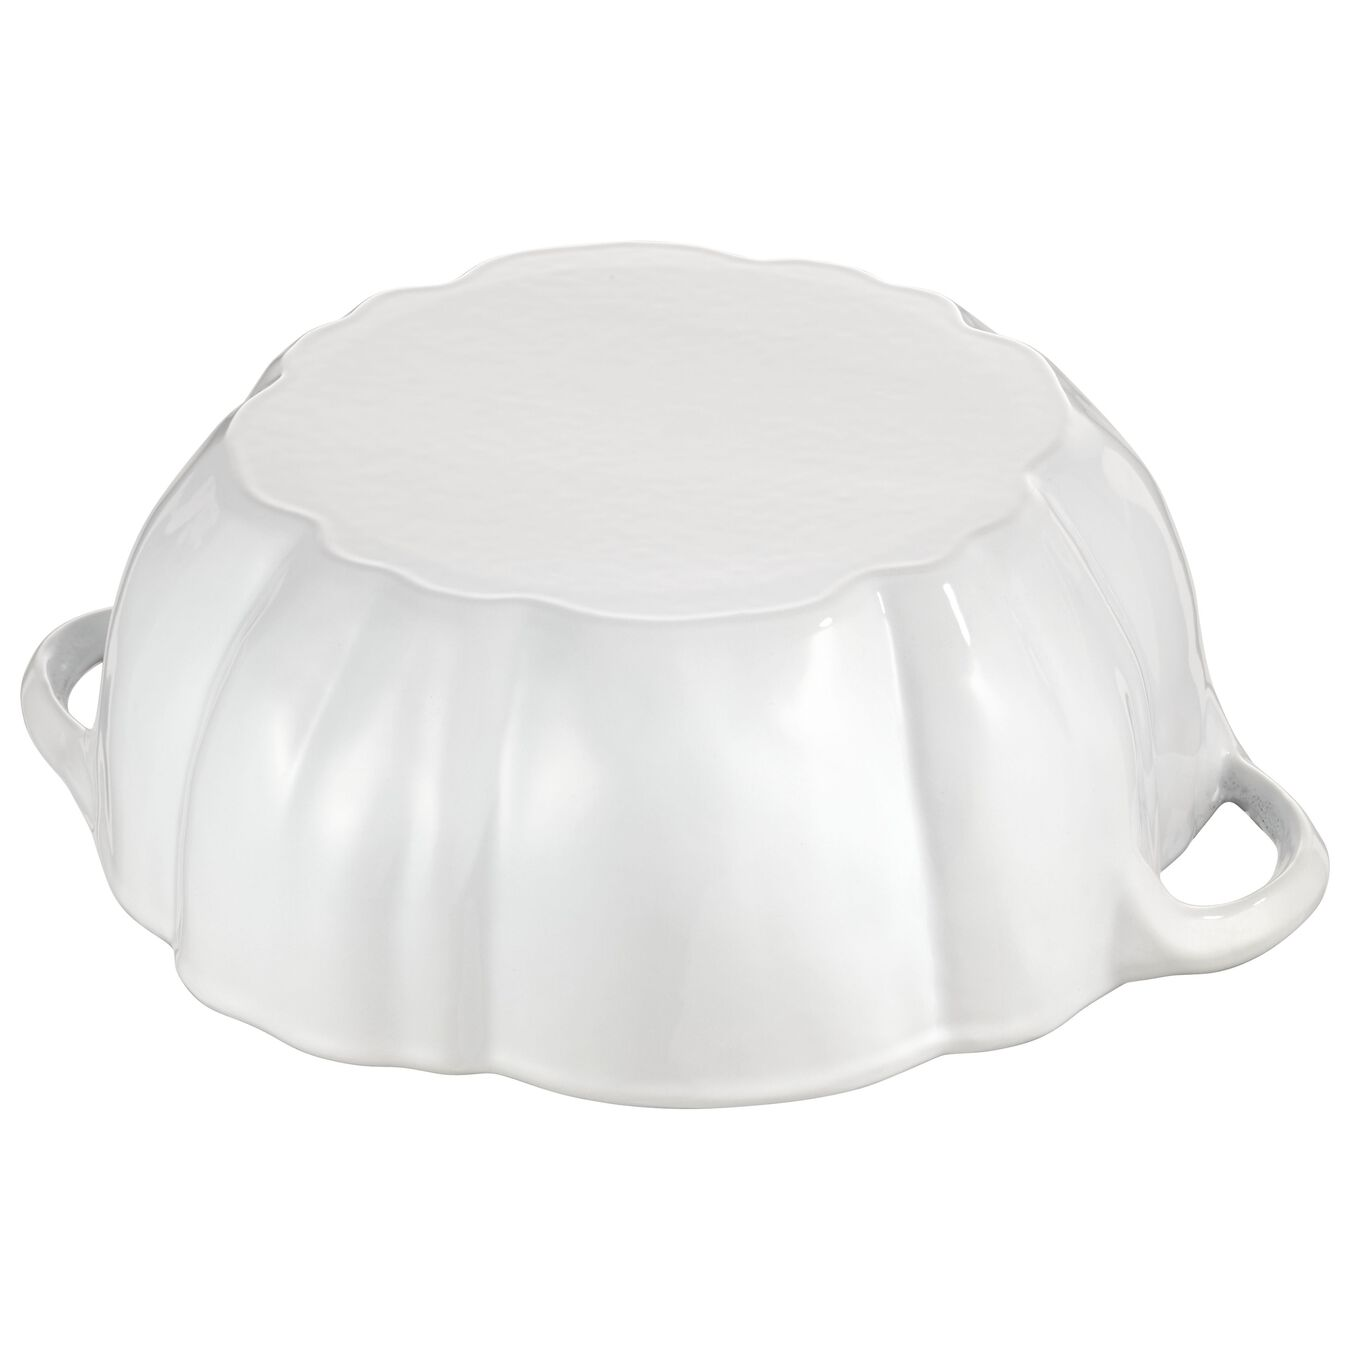 3,5 l Cast iron Citrouille Faitout, Pure-White,,large 5